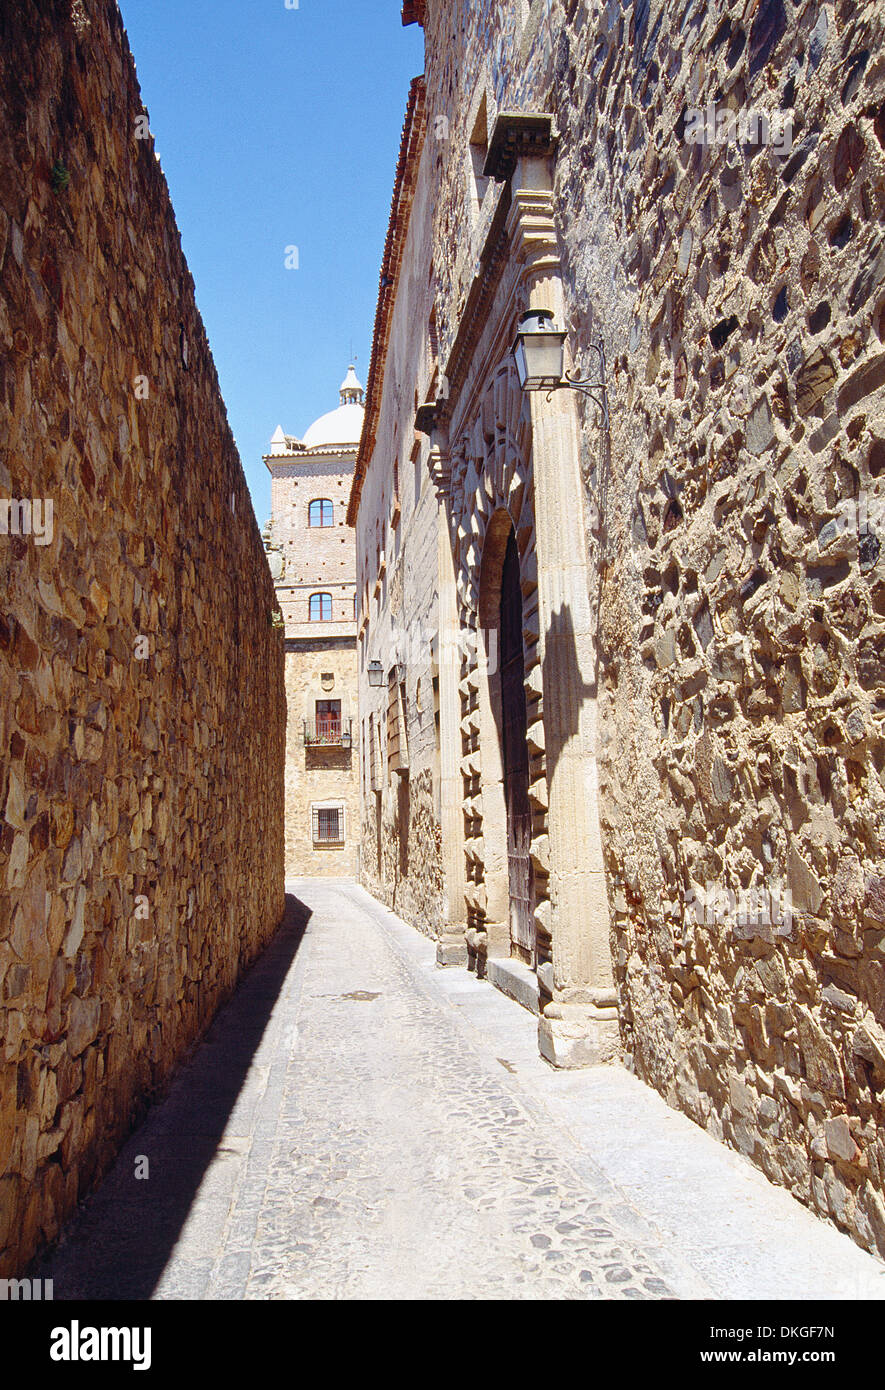 Narrow street in the old town. Caceres, Extremadura, Spain. - Stock Image